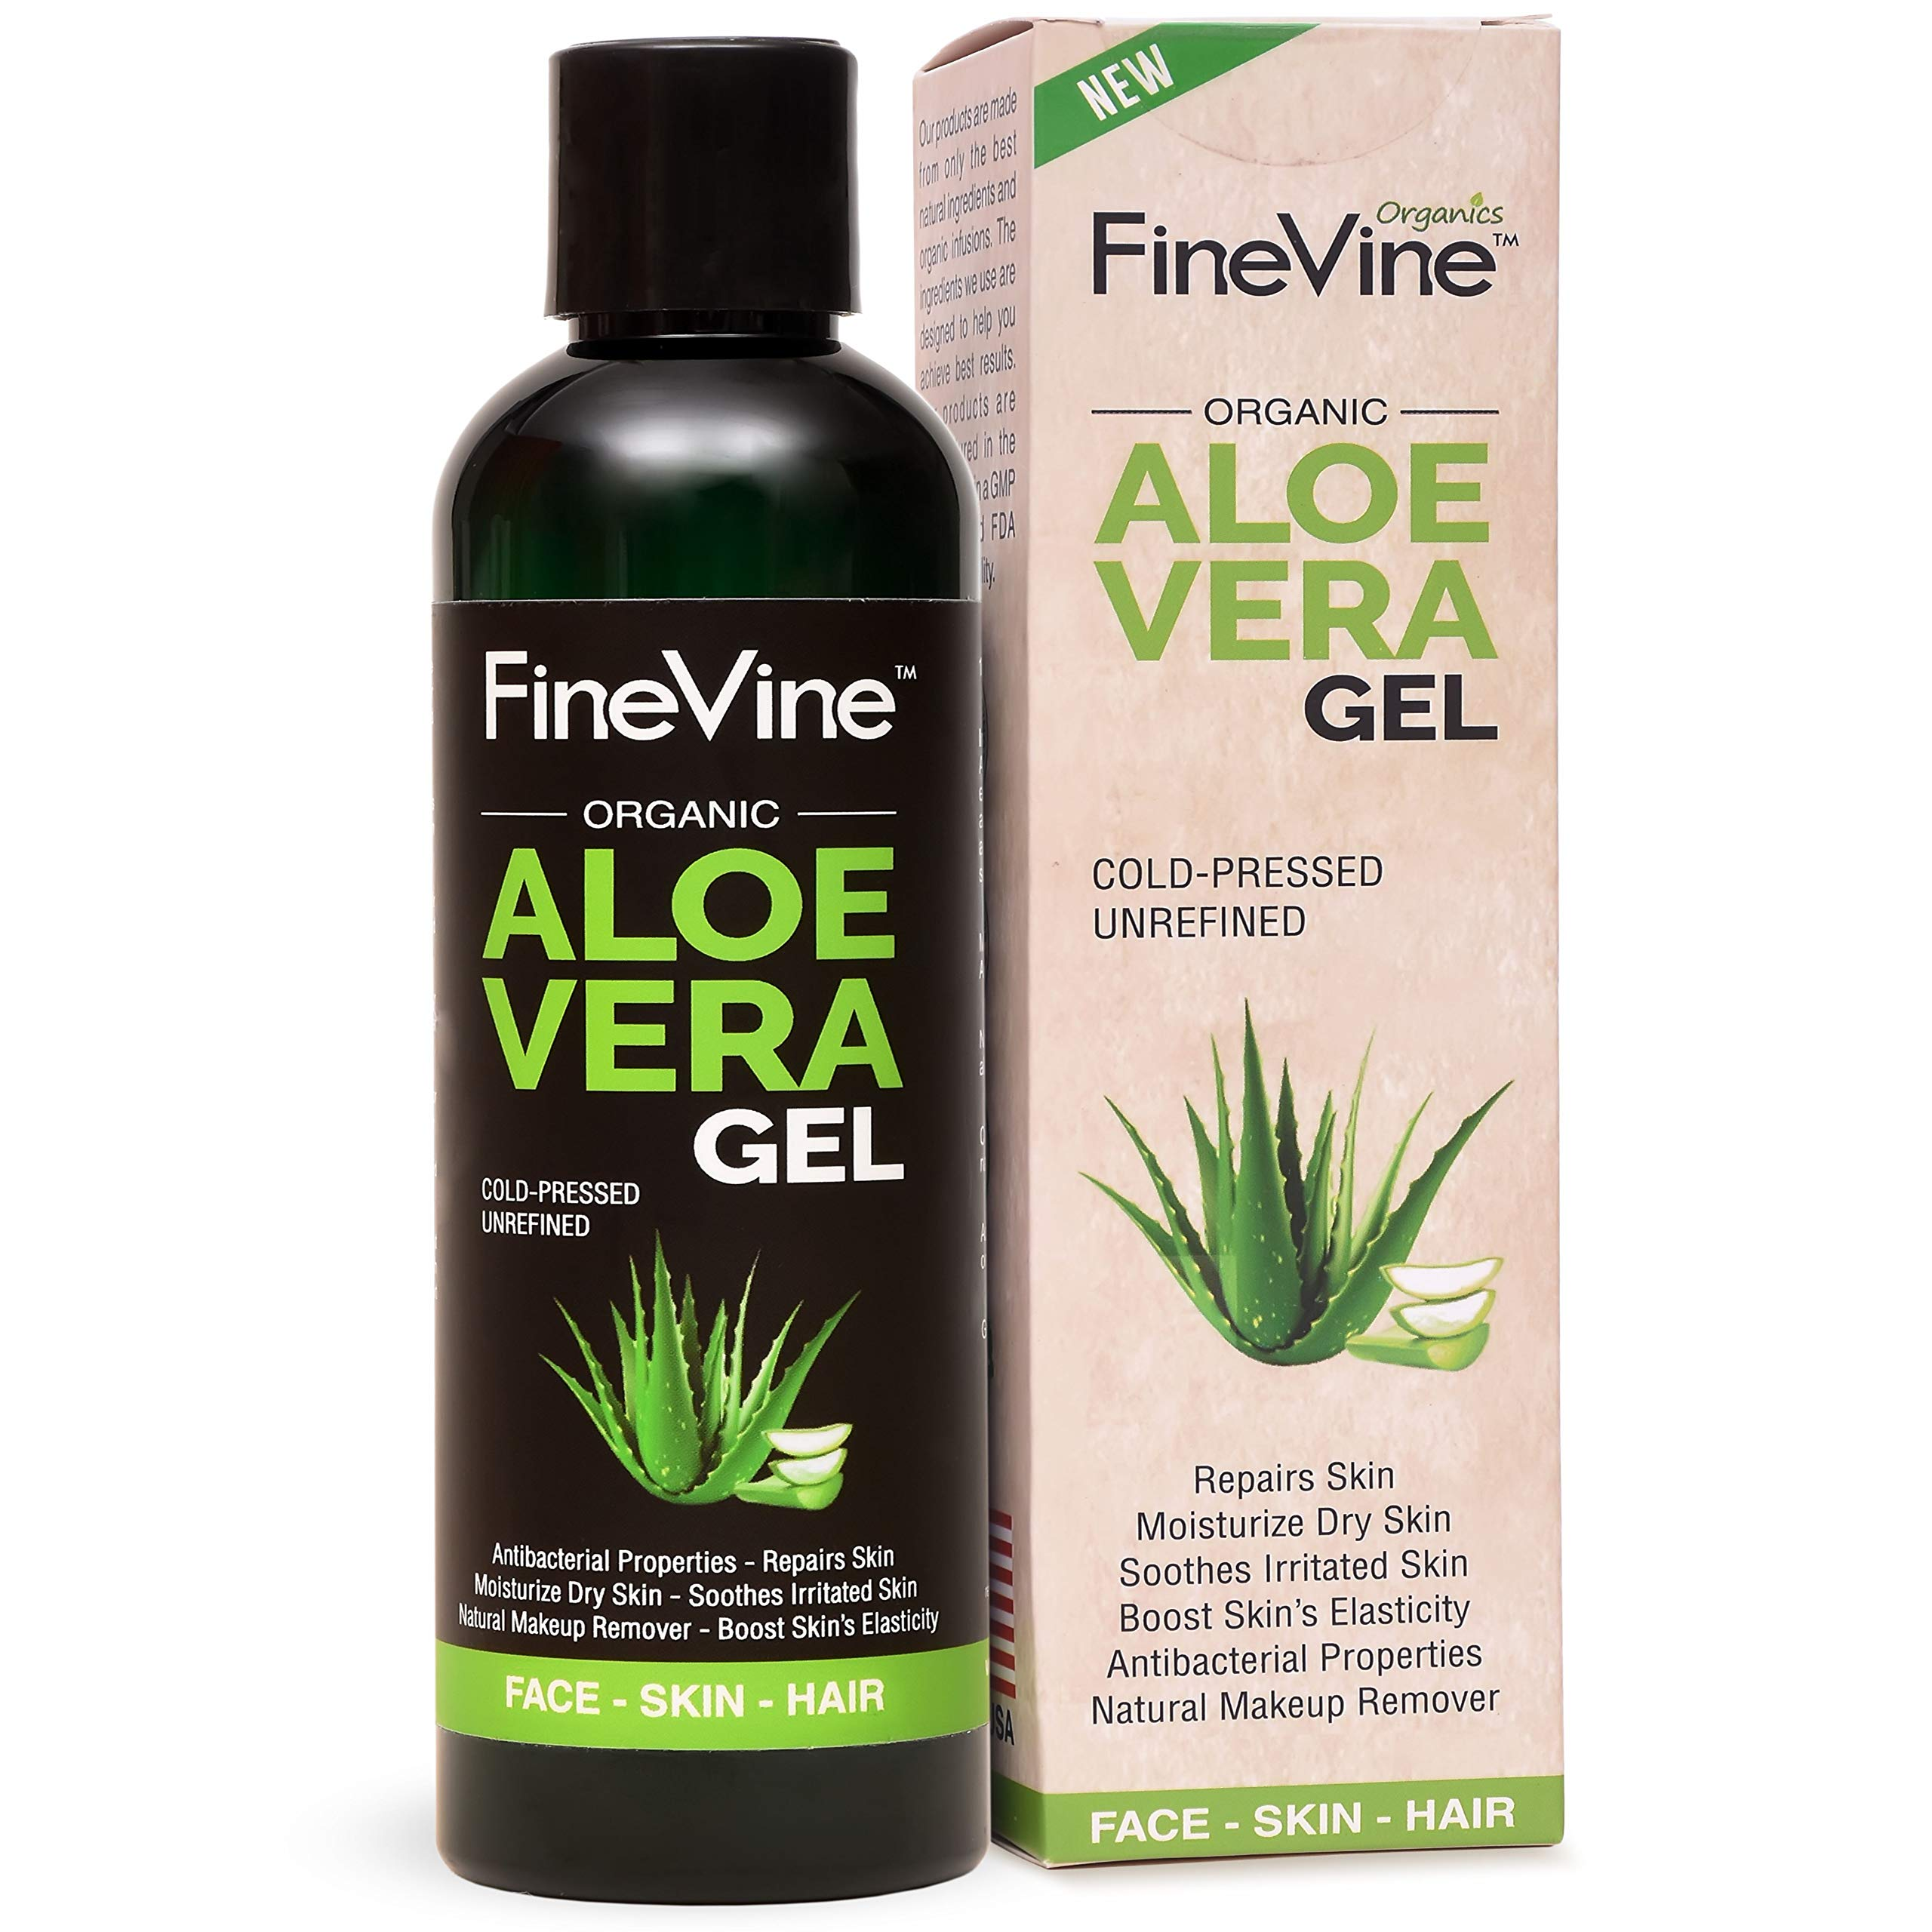 Best Aloe Vera Gel - Made in USA - for Skin Burn, Sunburn, Acne, Razor Bumps, Psoriasis, Eczema, Face and Hair - Absorbs Fast with No Sticky Residue. by FineVine